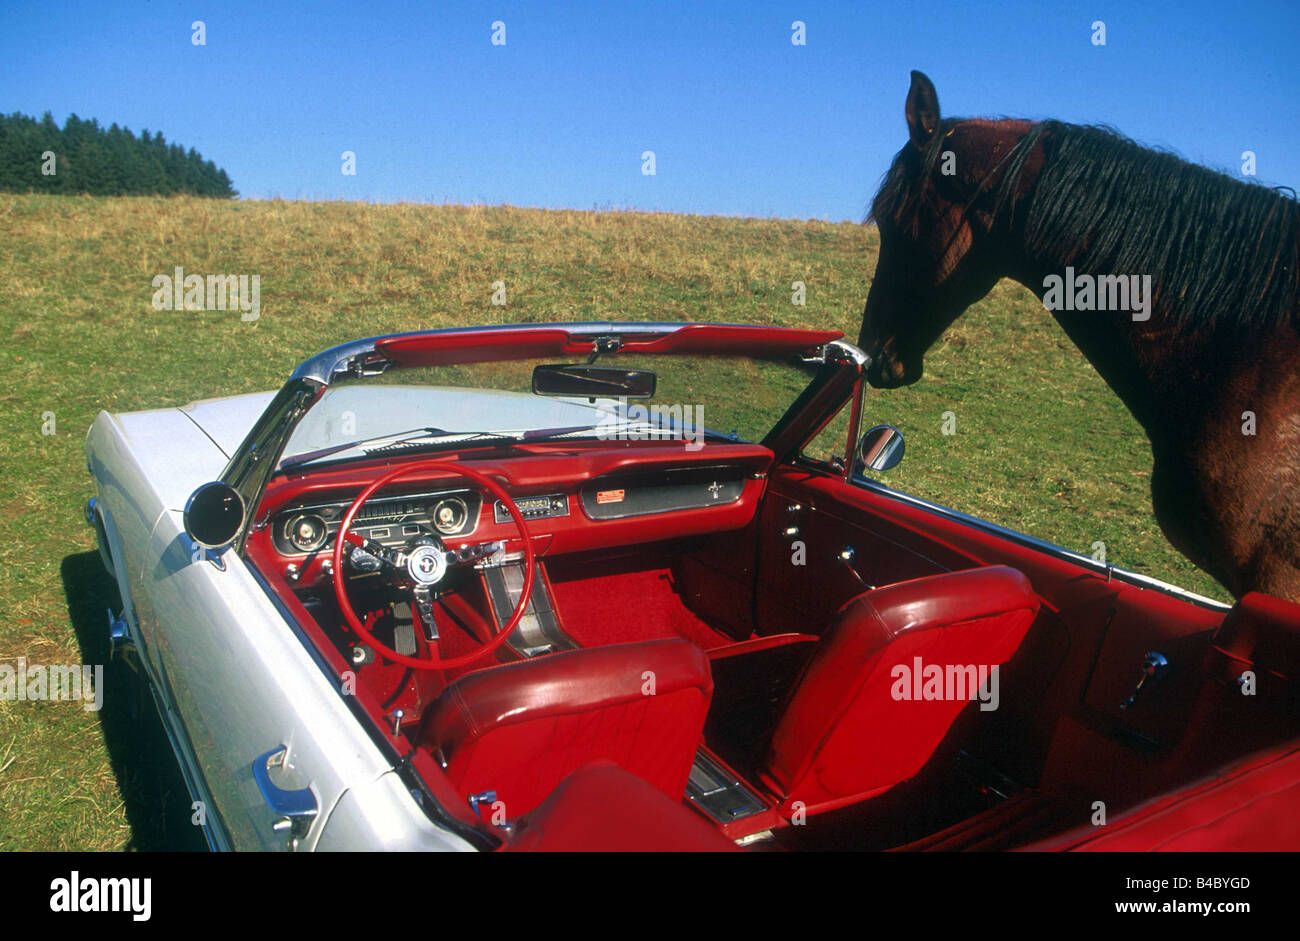 car ford mustang convertible model year 1965 white vintage stock photo 19932093 alamy. Black Bedroom Furniture Sets. Home Design Ideas